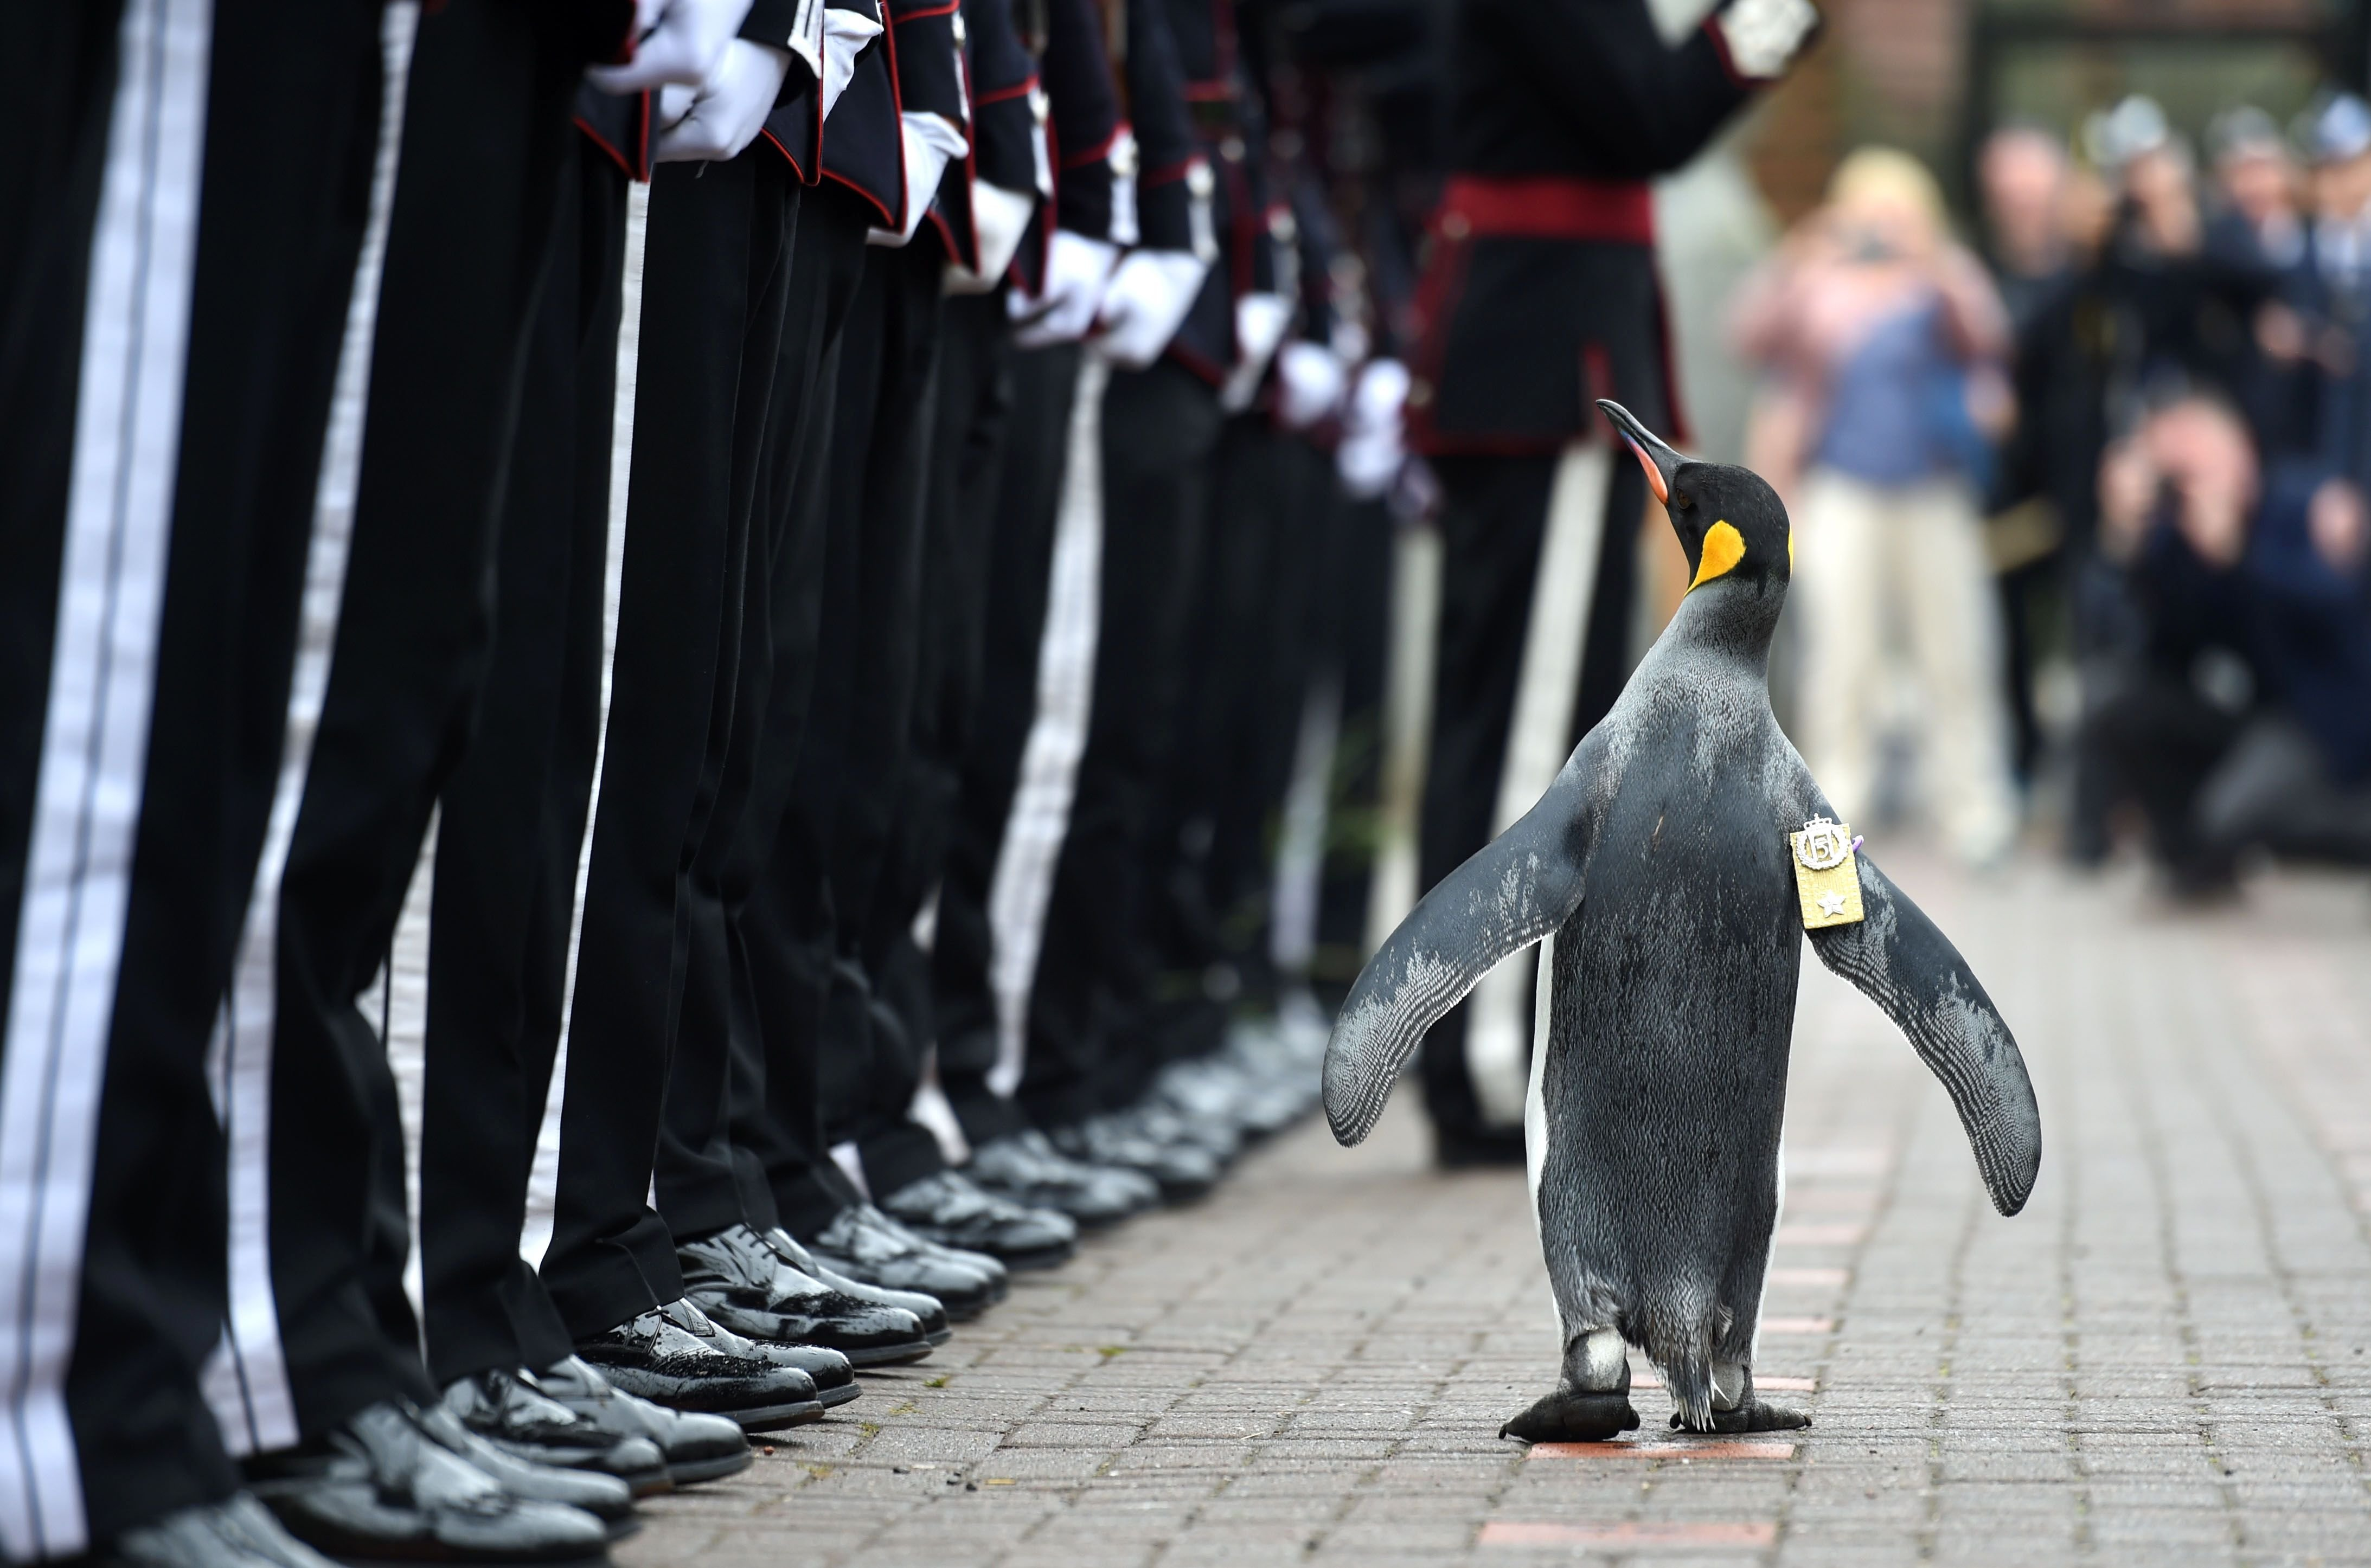 A penguin named Nils Olav inspects the Guard of Honour formed by His Majesty the King of Norway's Guard at Edinburgh Zoo in Edinburgh, Scotland, on Aug. 22, 2016.